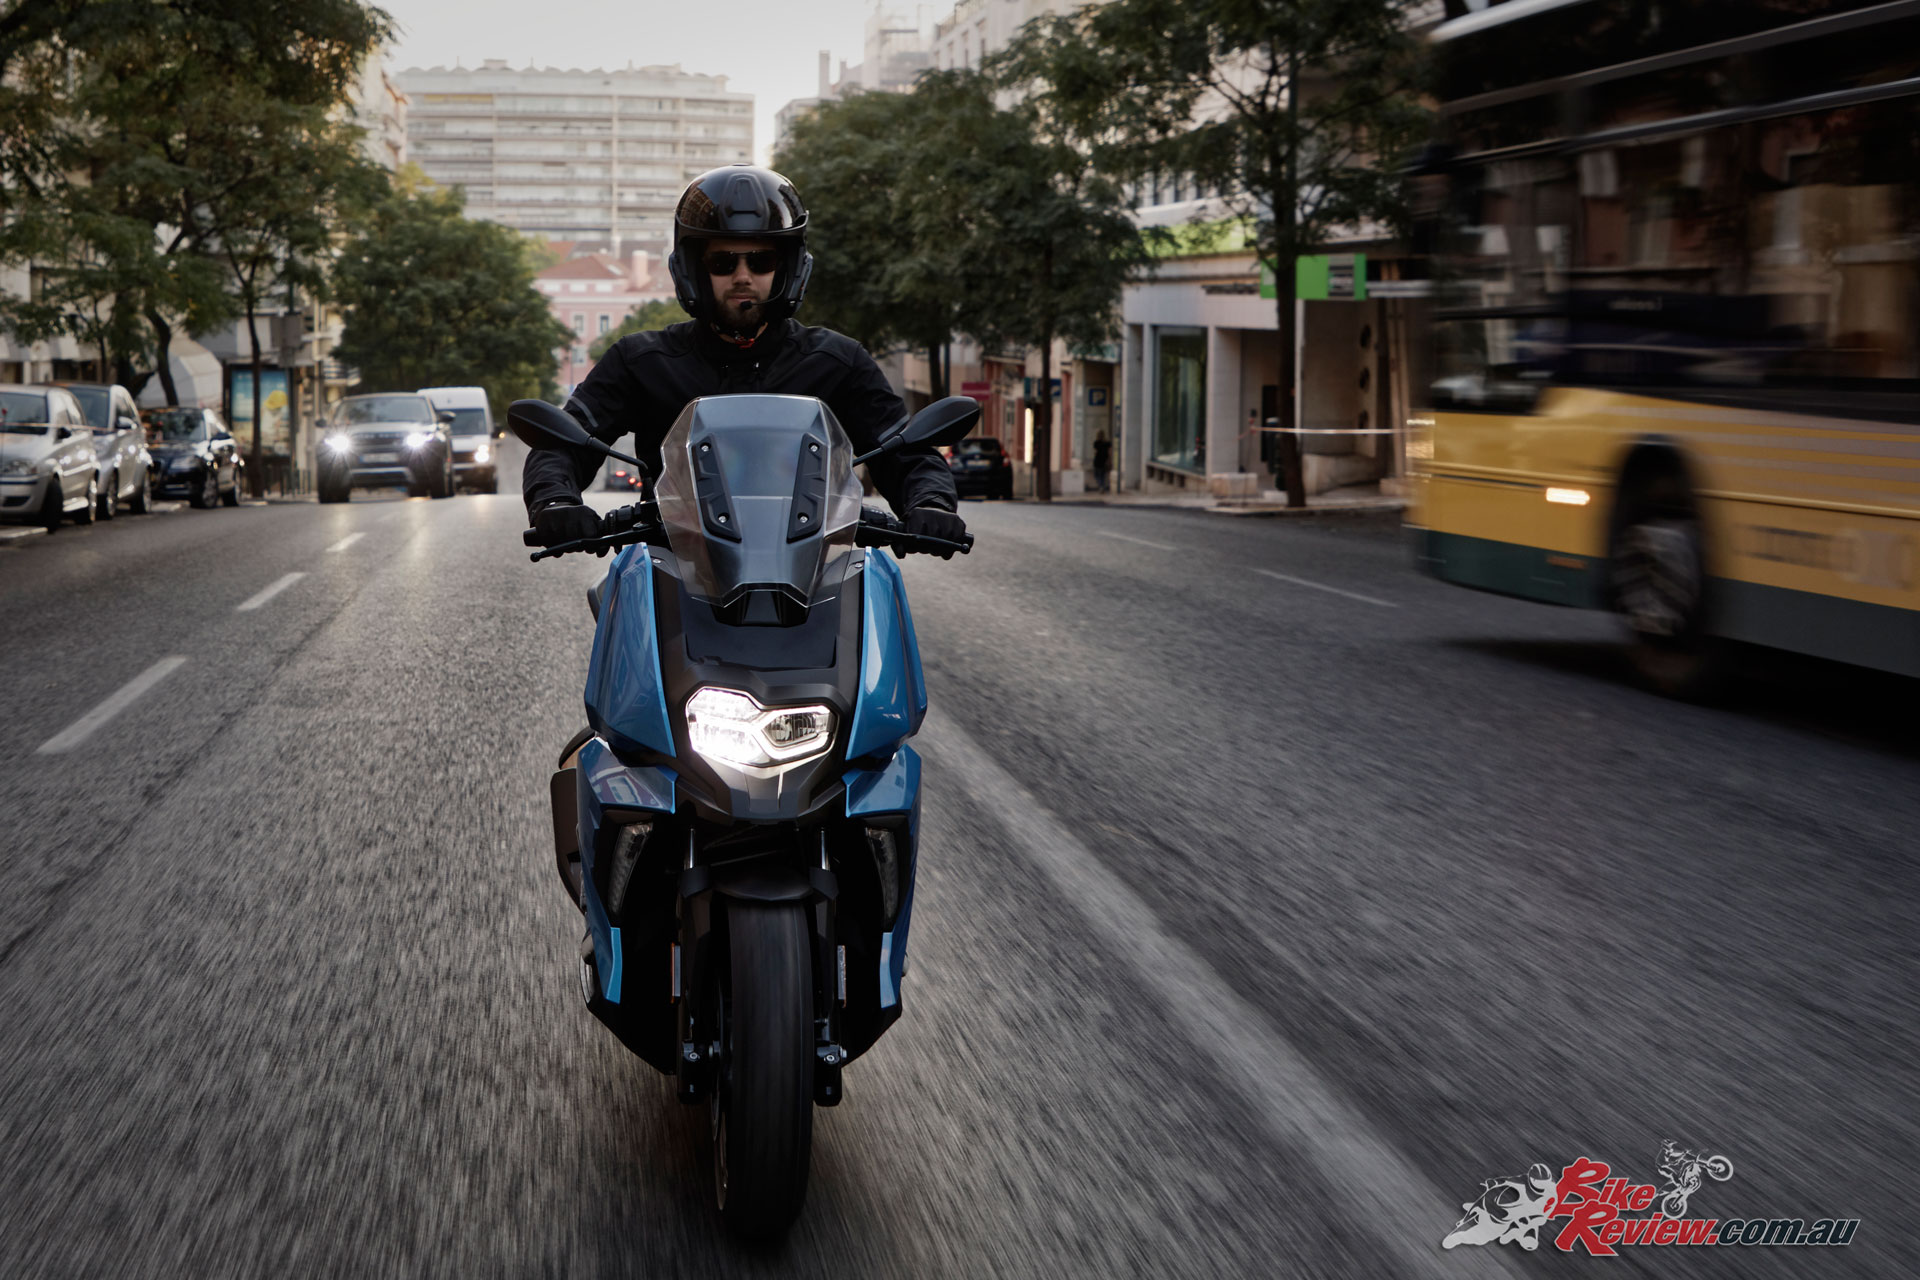 BMW Motorrad's move to extend the warranty period could well be a game changer putting pressure on other manufacturers to follow suit